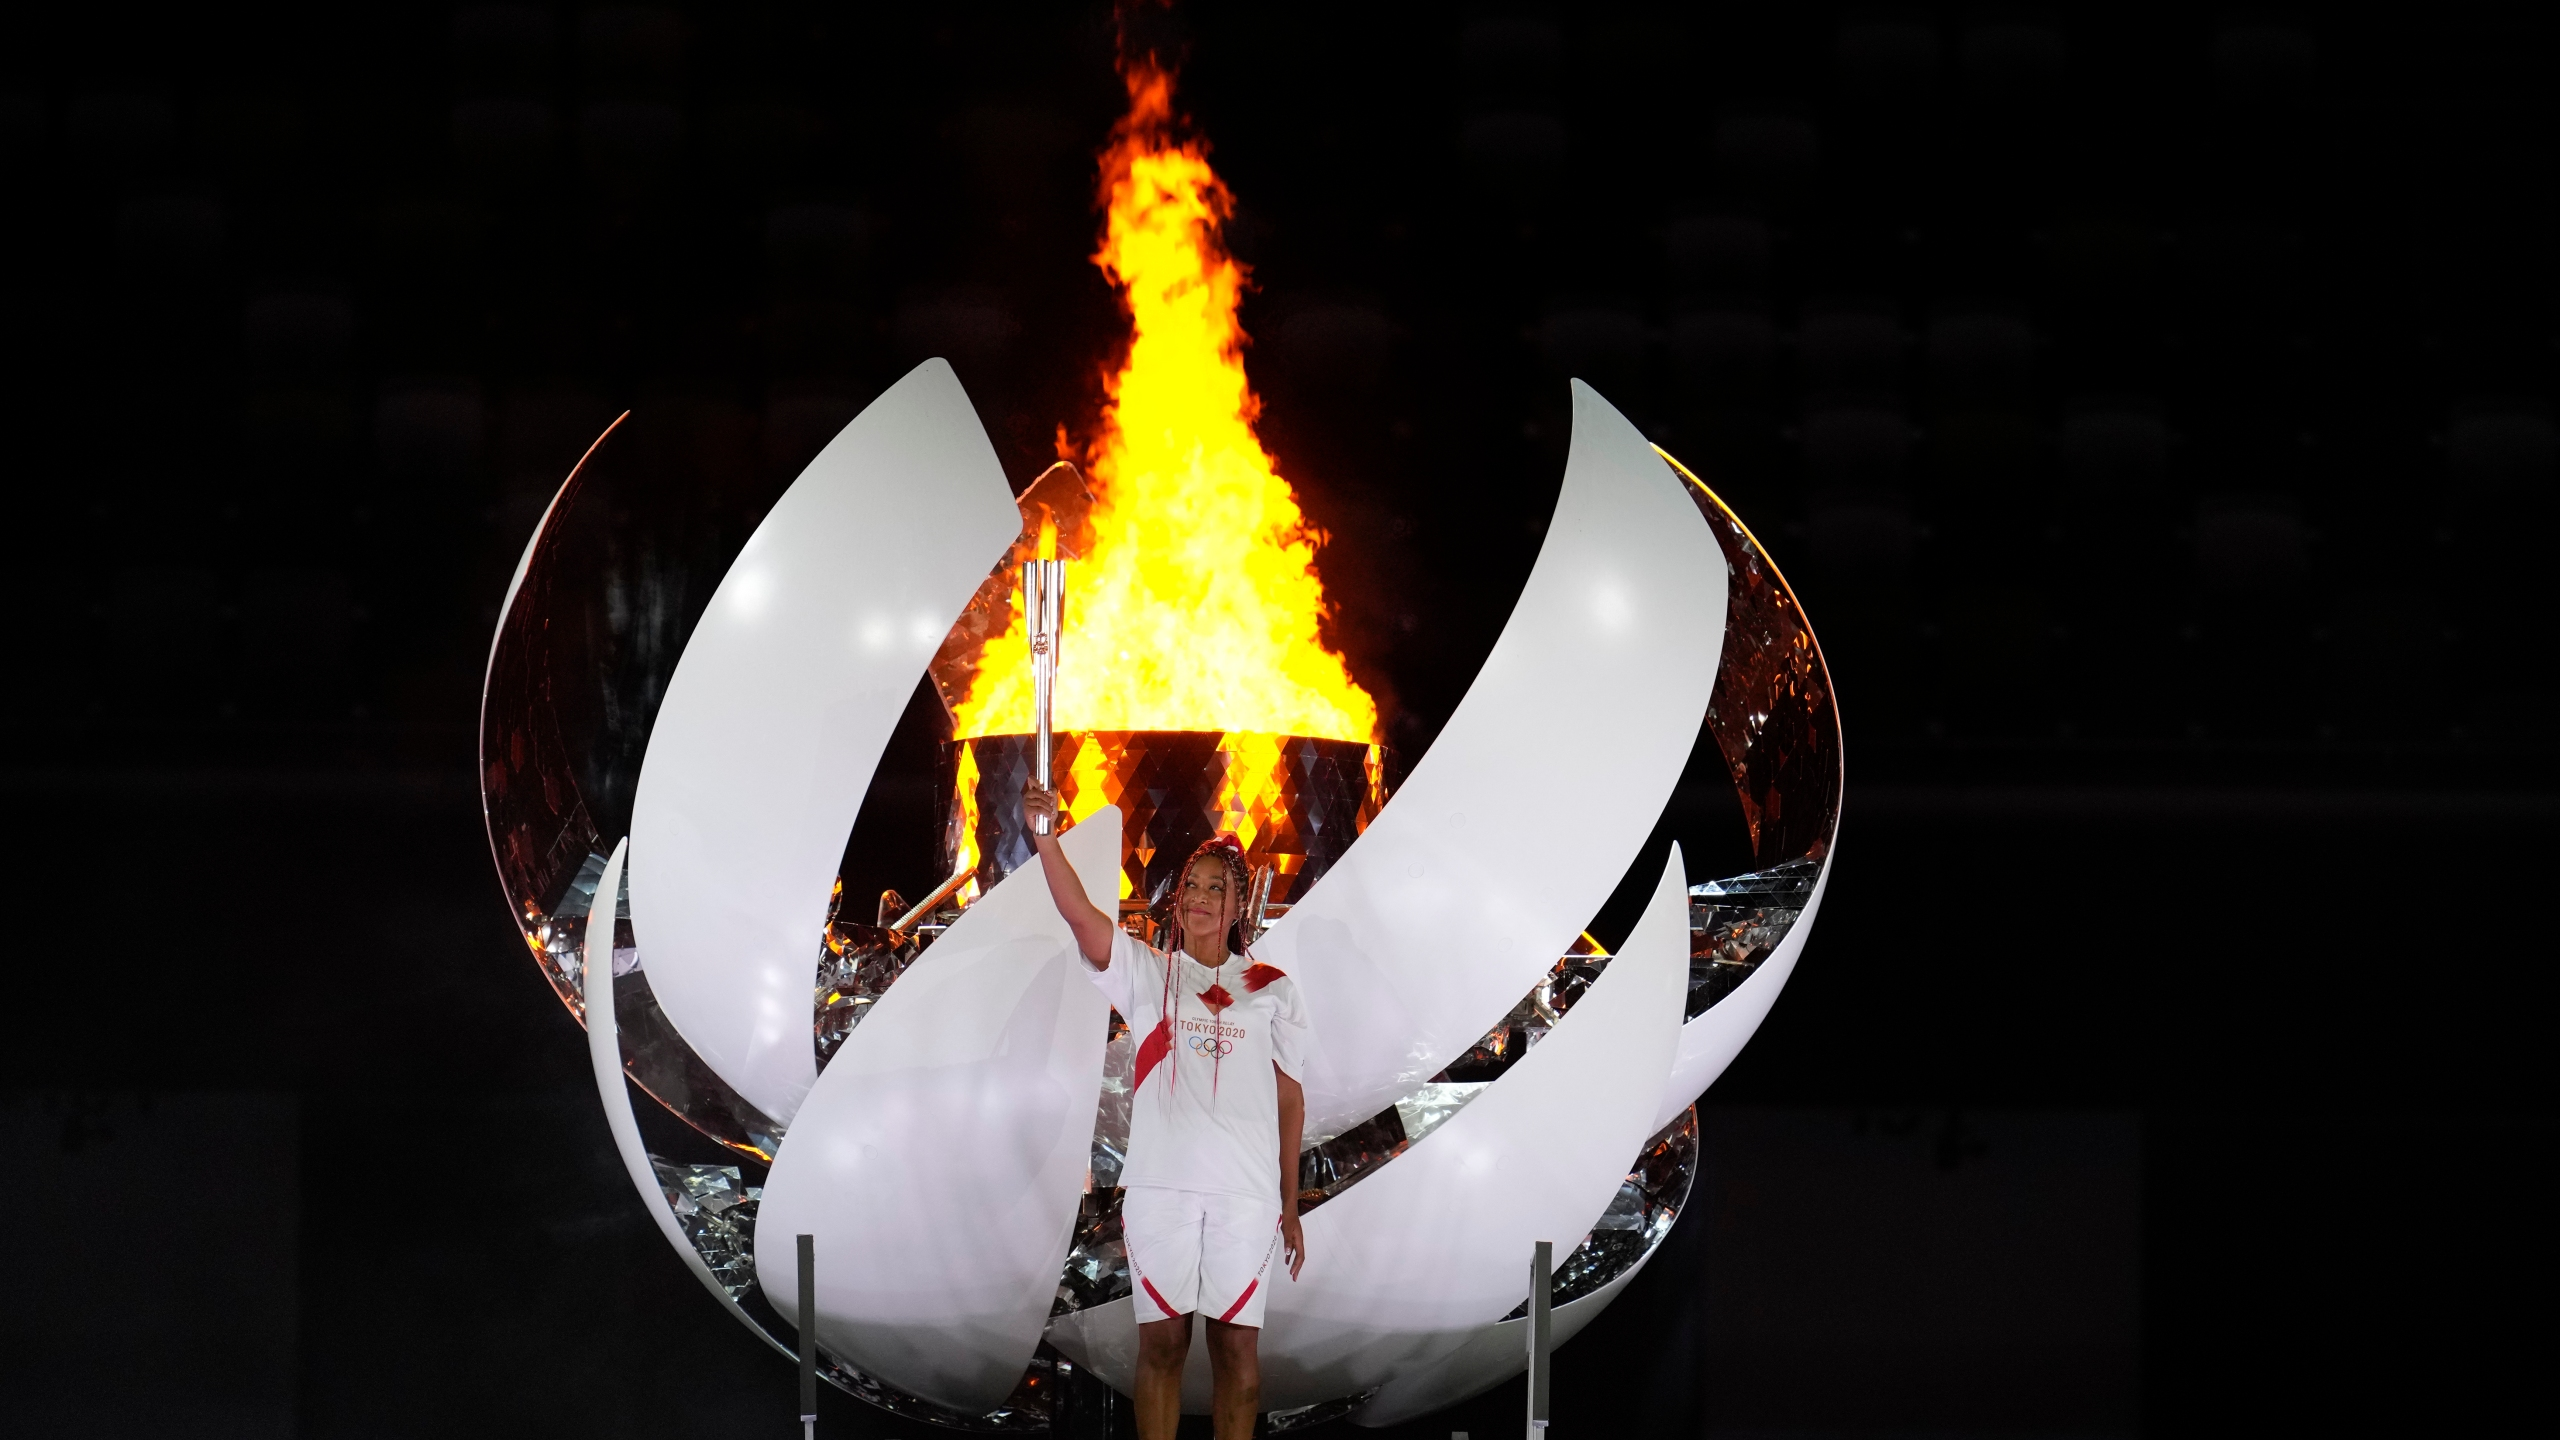 Japan's Naomi Osaka lights the cauldron during the opening ceremony in the Olympic Stadium at the 2020 Summer Olympics, in Tokyo, Japan.